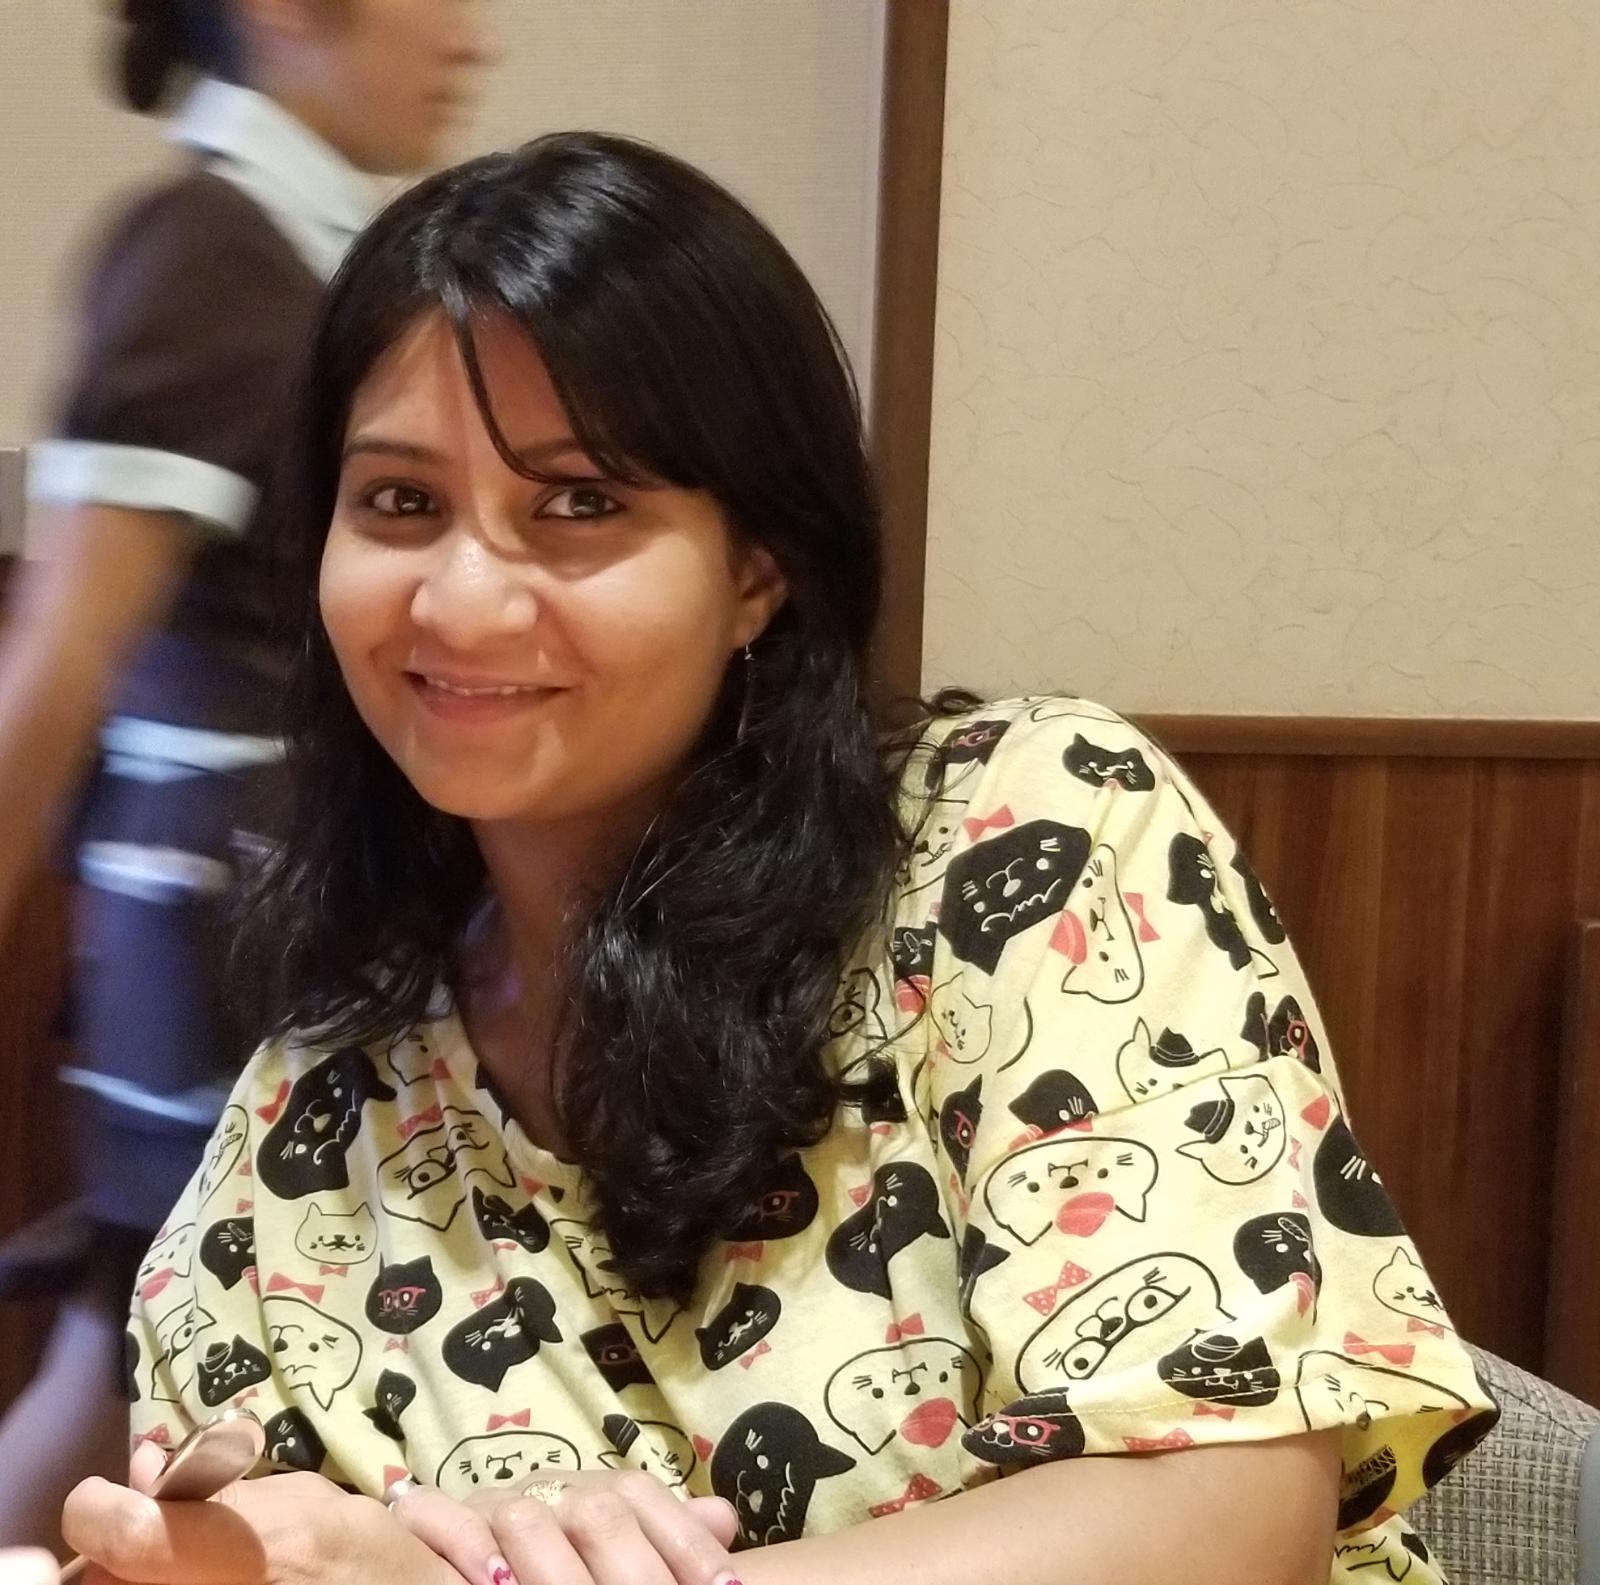 Nivedita Sharma had been a team leader at a bank in India but has had trouble finding work in her field of expertise in Japan due to language issues.